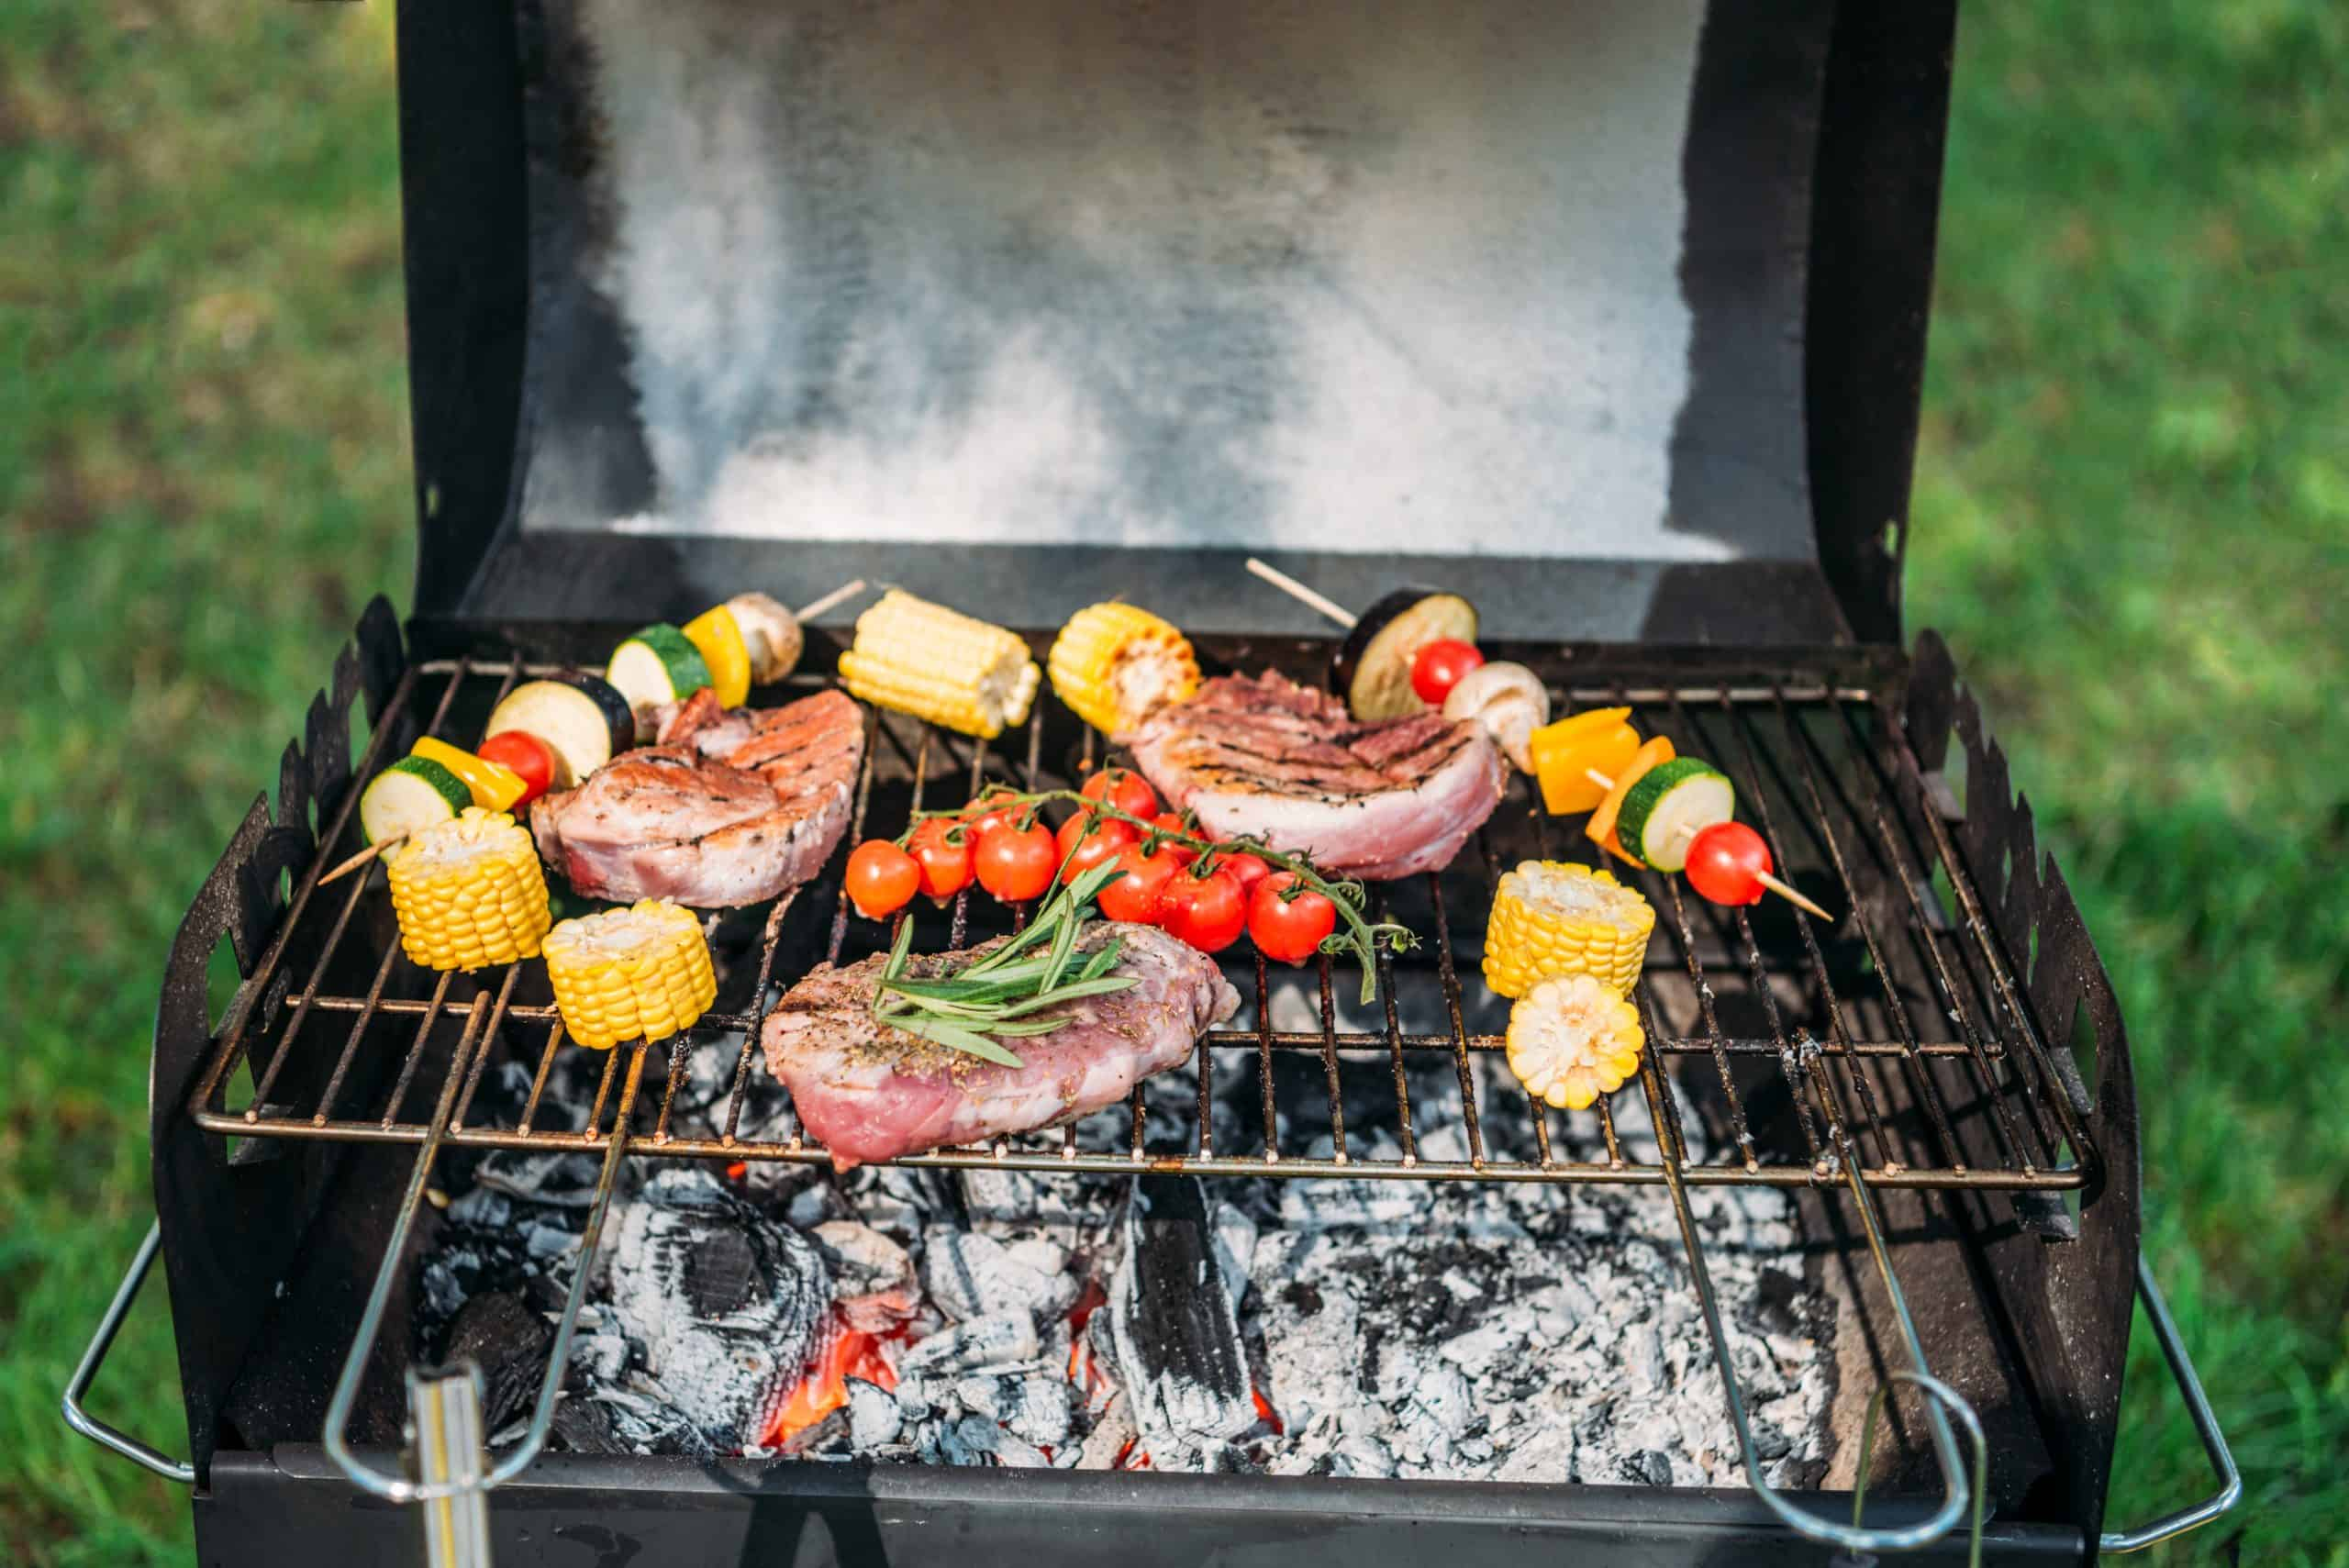 Barbecue safety tips - grill loaded with steak and vegetable skeweres